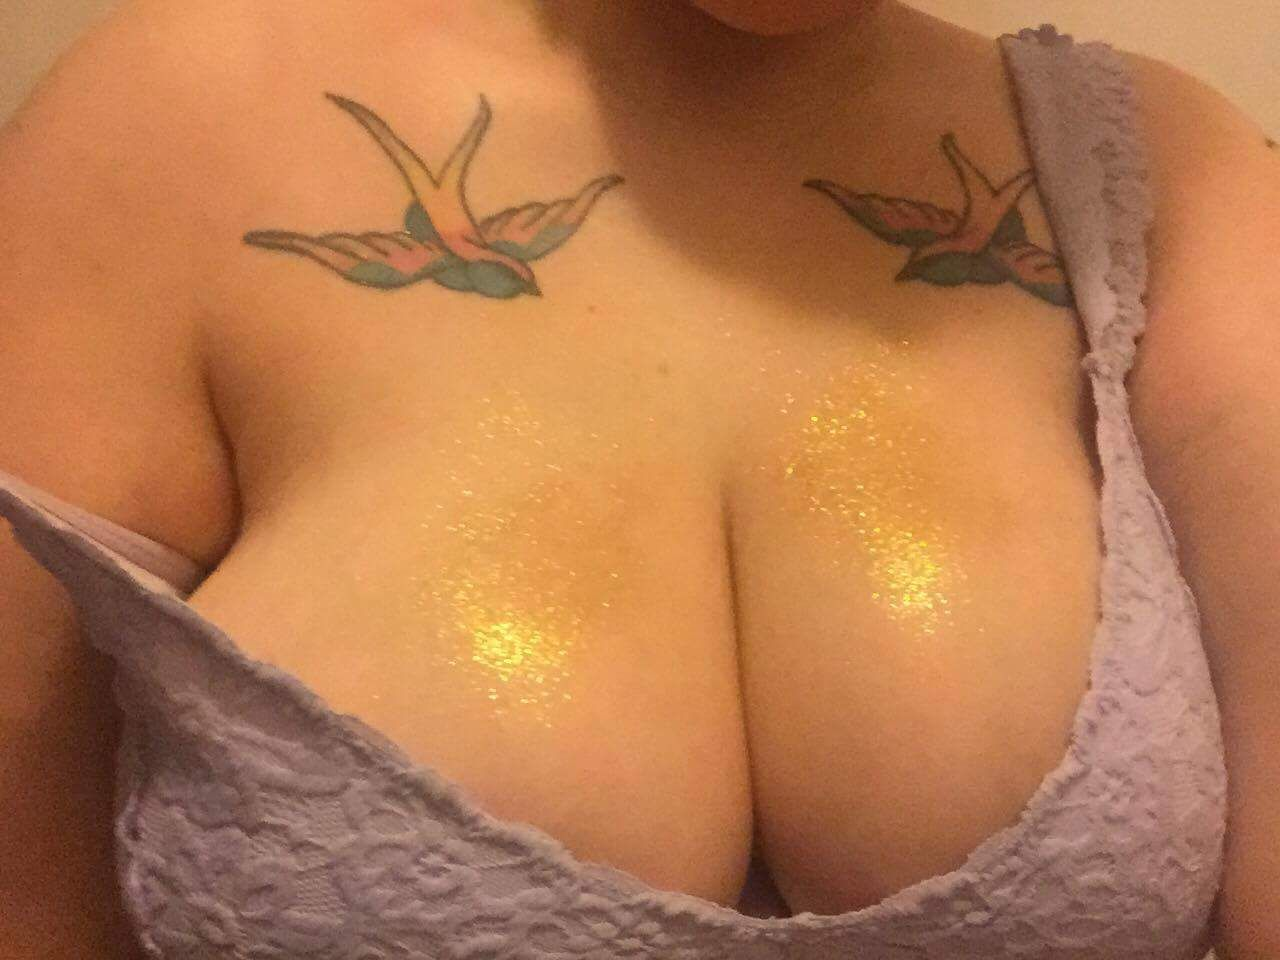 Lush bath bomb all over my bra…